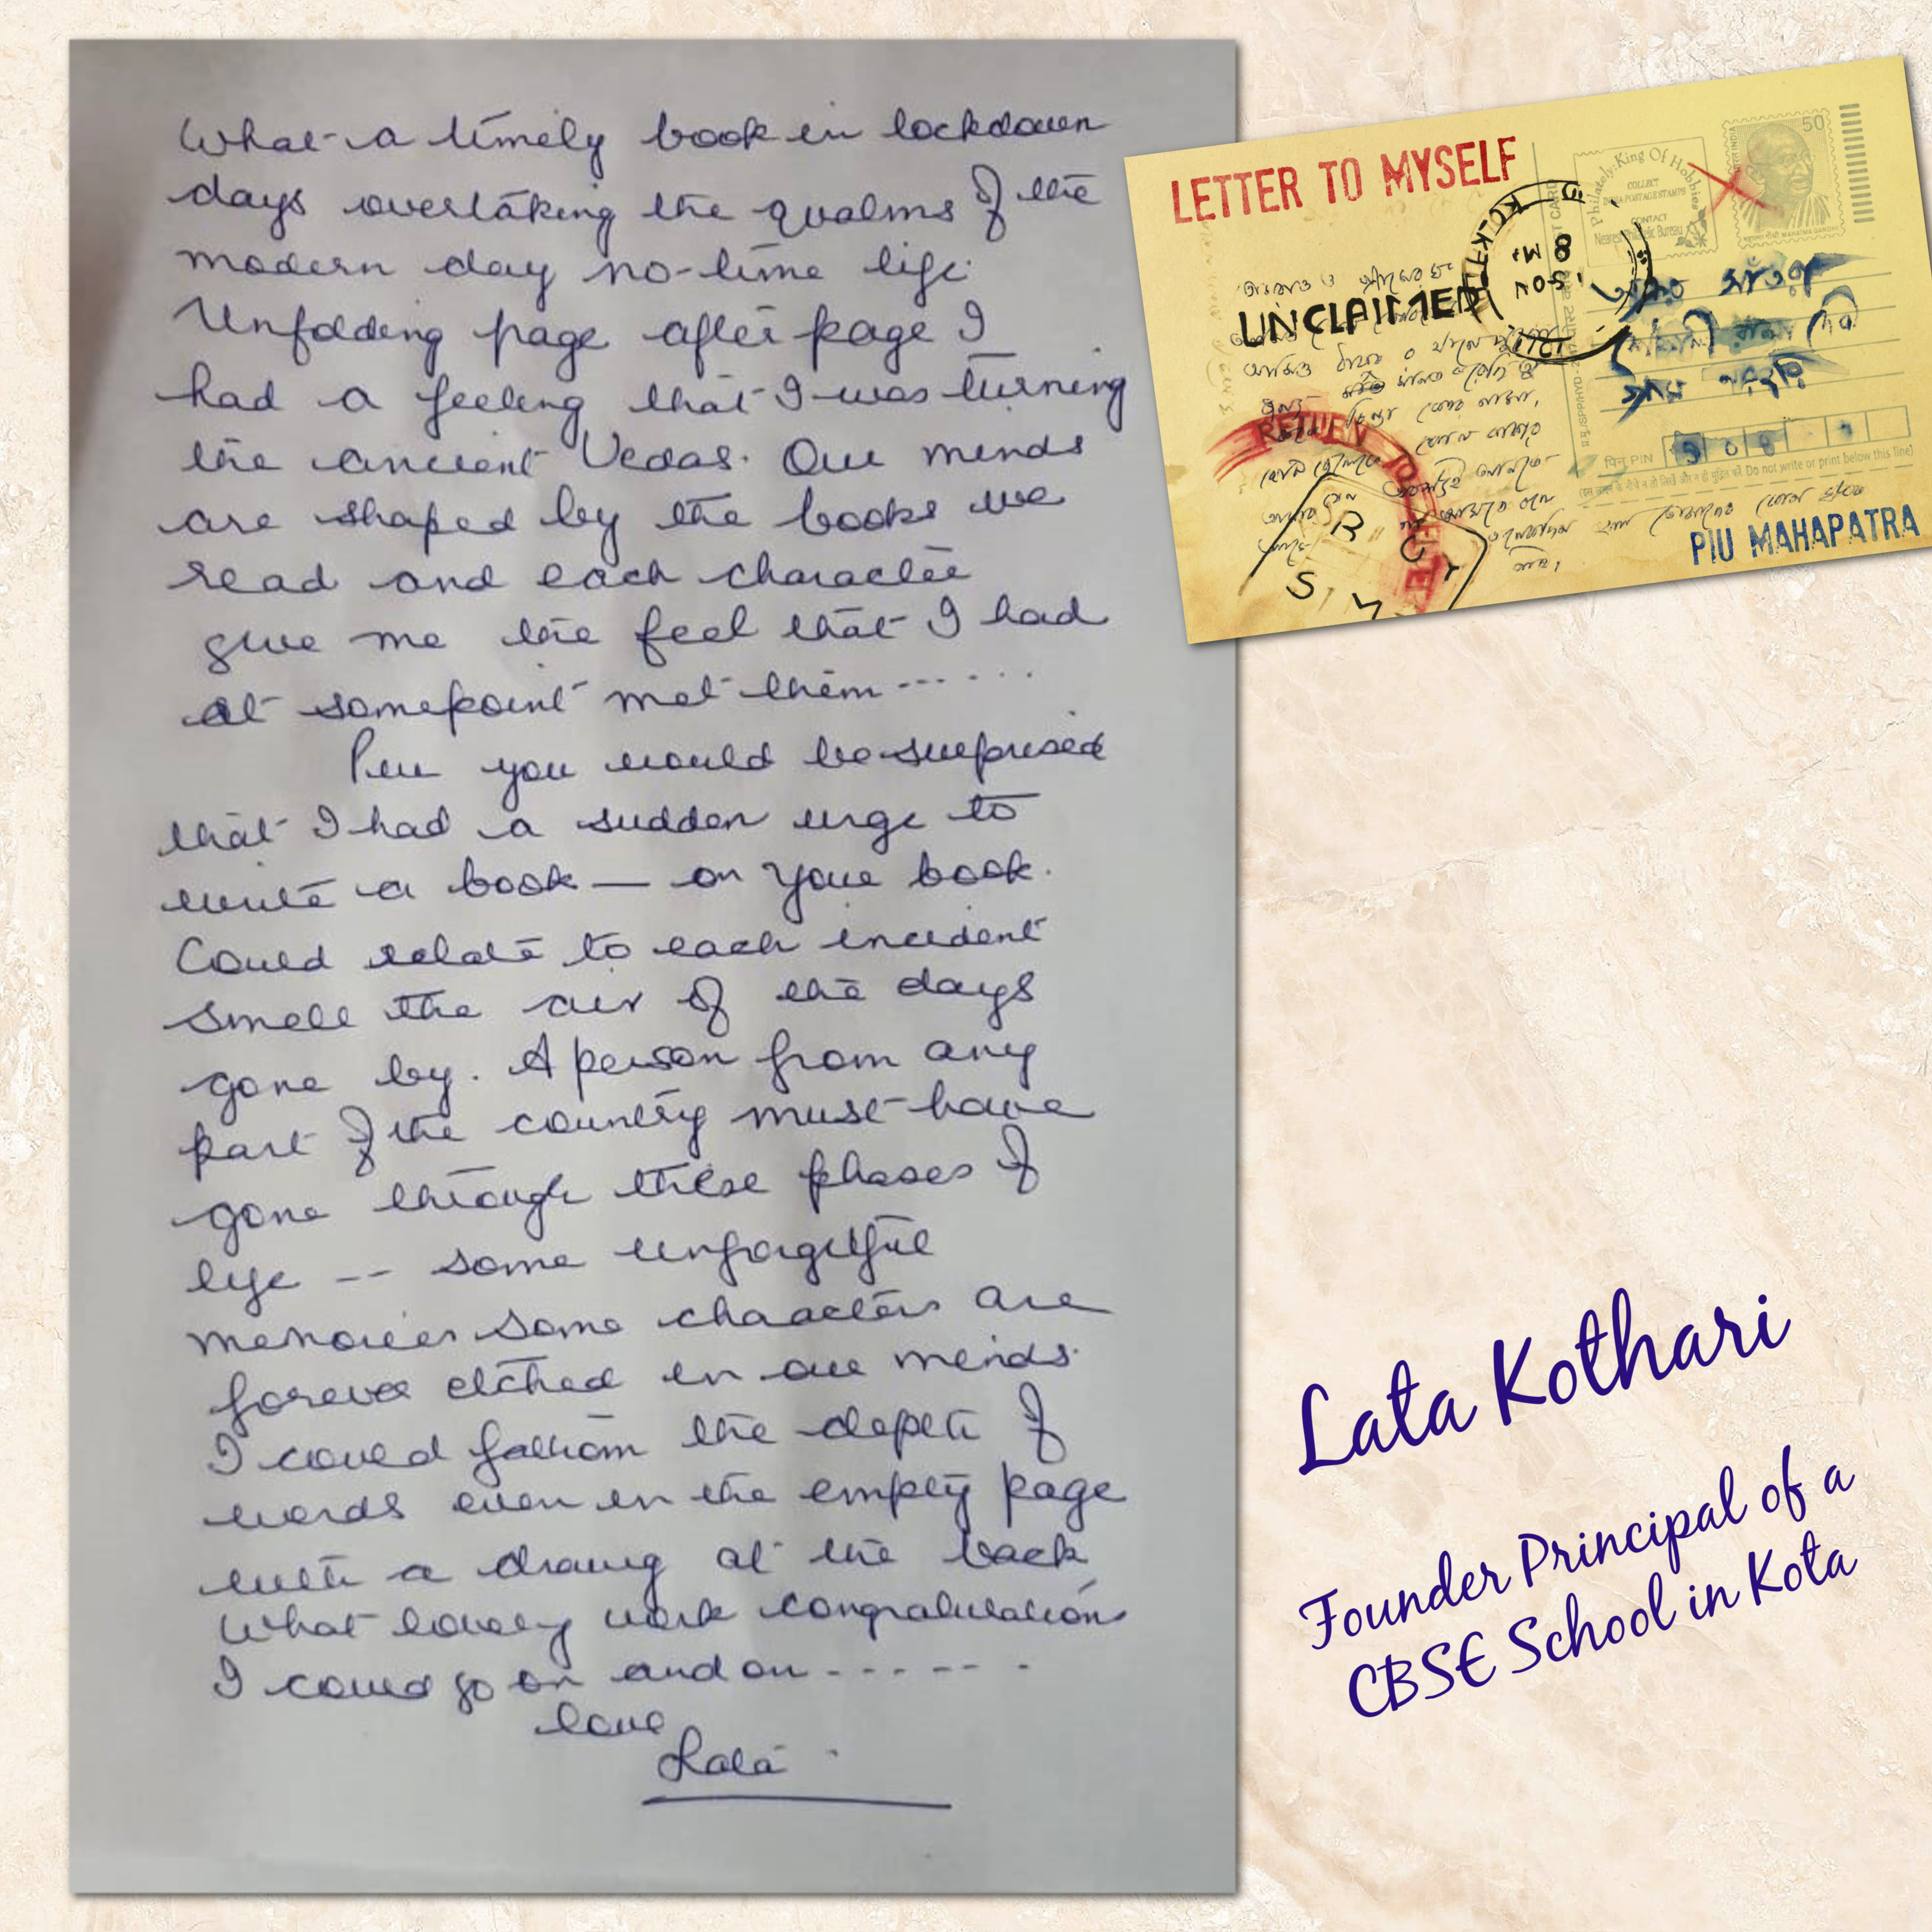 letter to myself review